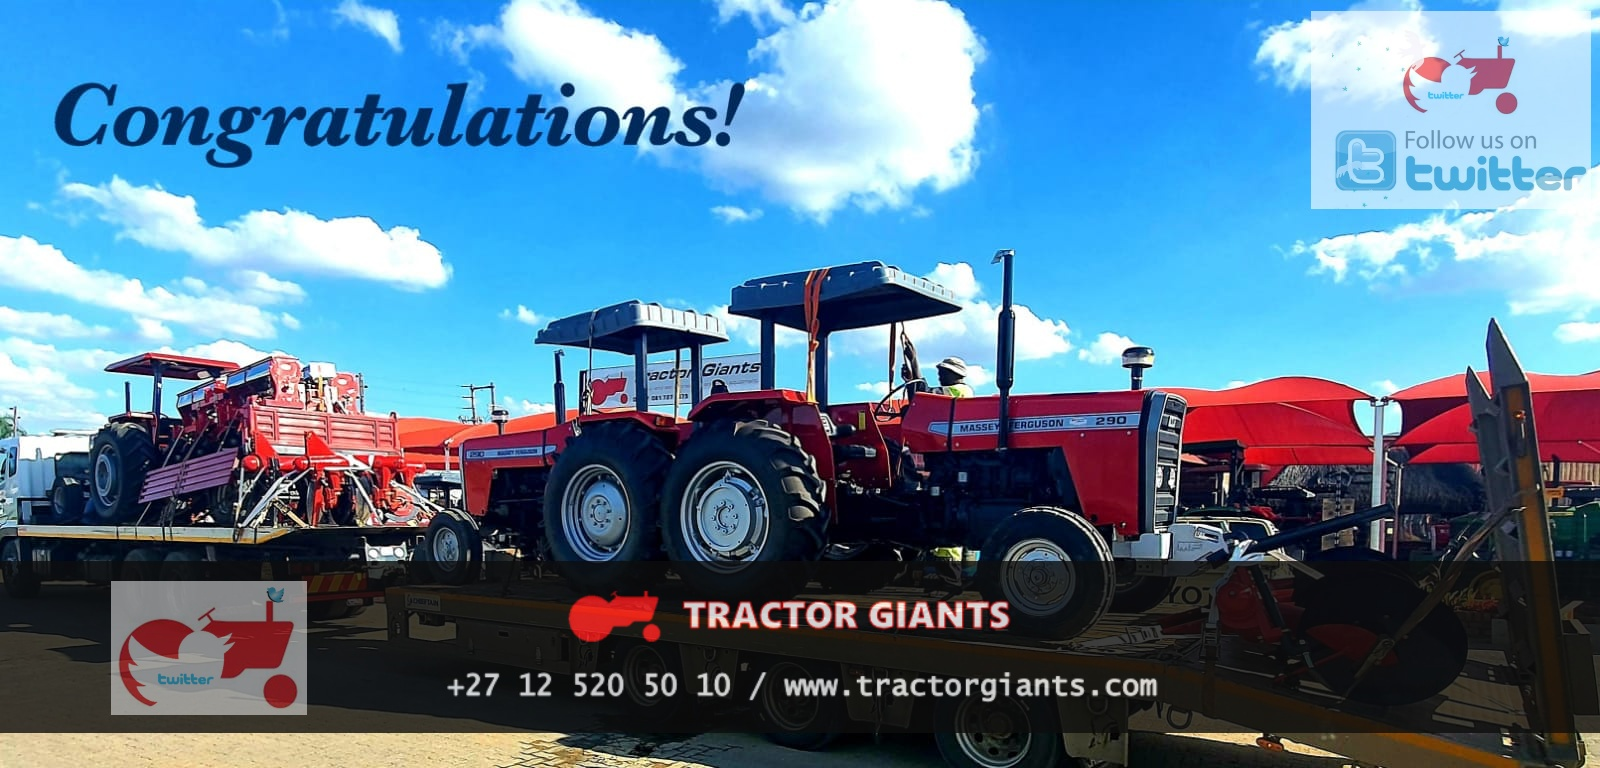 tractors for sale - tractor giants 5 (1)